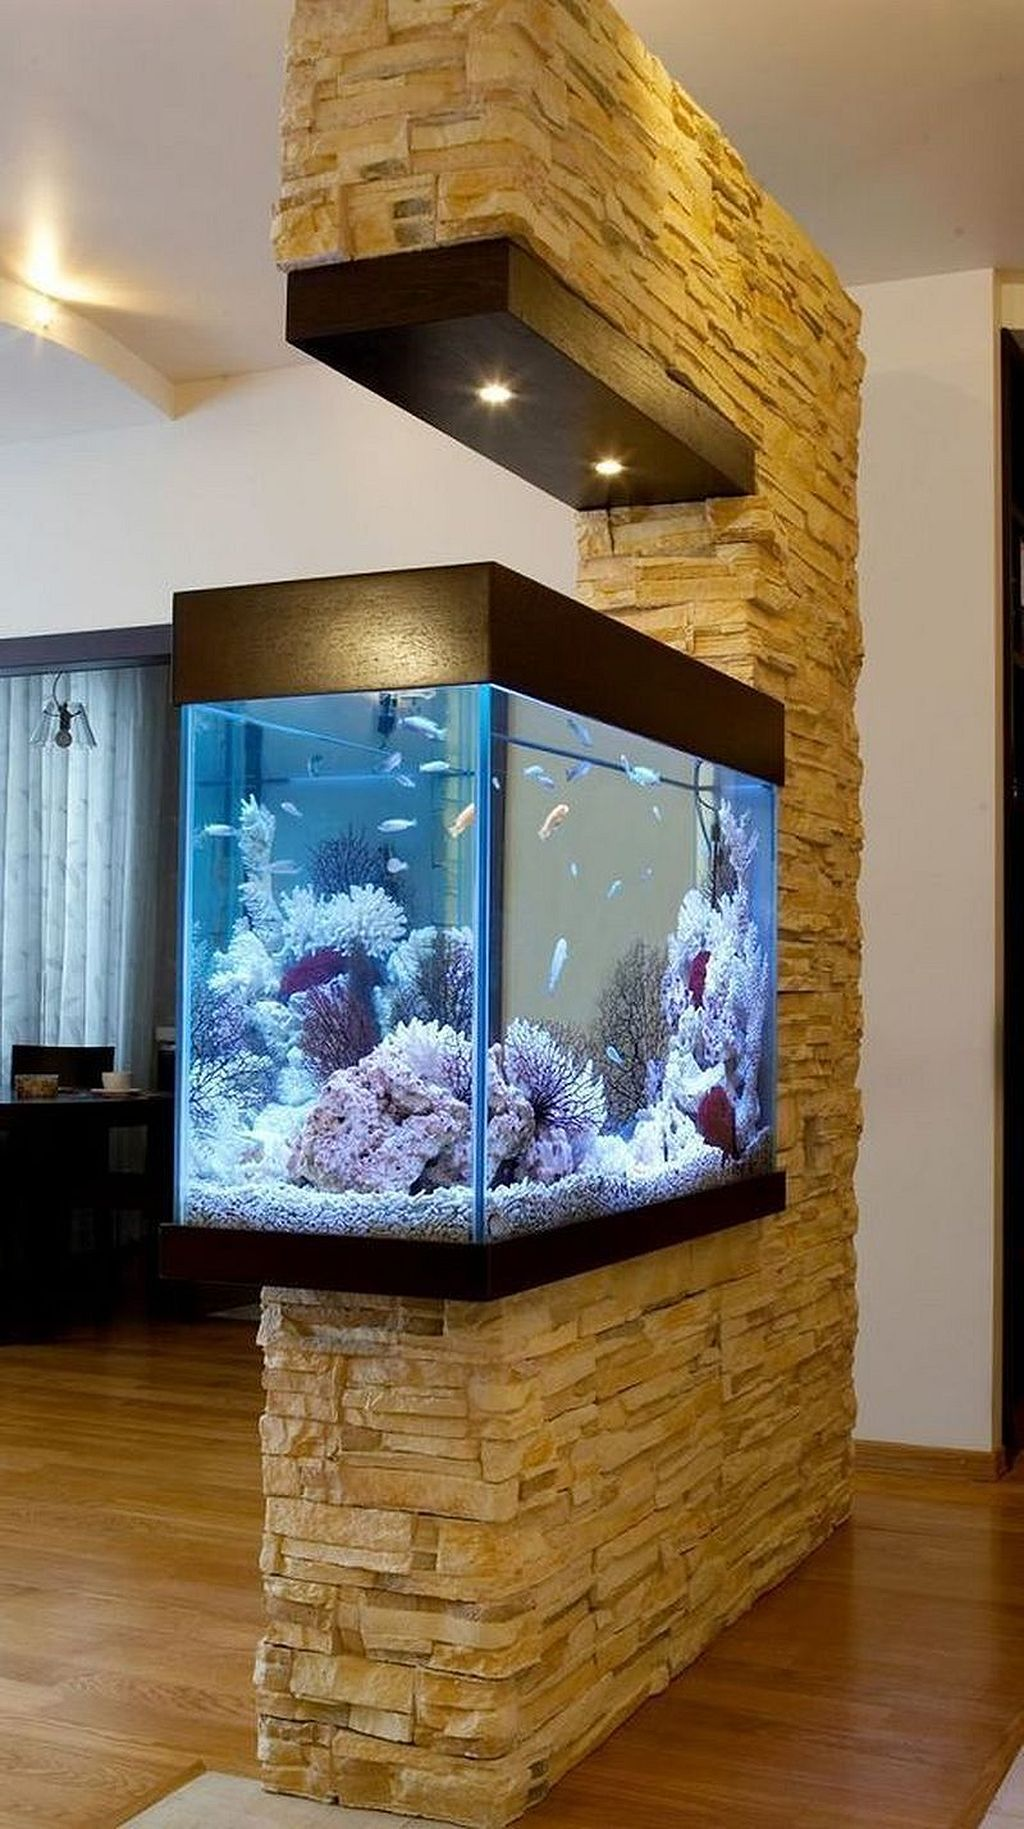 Stunning 15 Stunning Aquarium Design Ideas For Indoor Decorations Https Homegardenmagz Com 15 Stunning Aquarium Home Aquarium Indoor Decor Amazing Aquariums